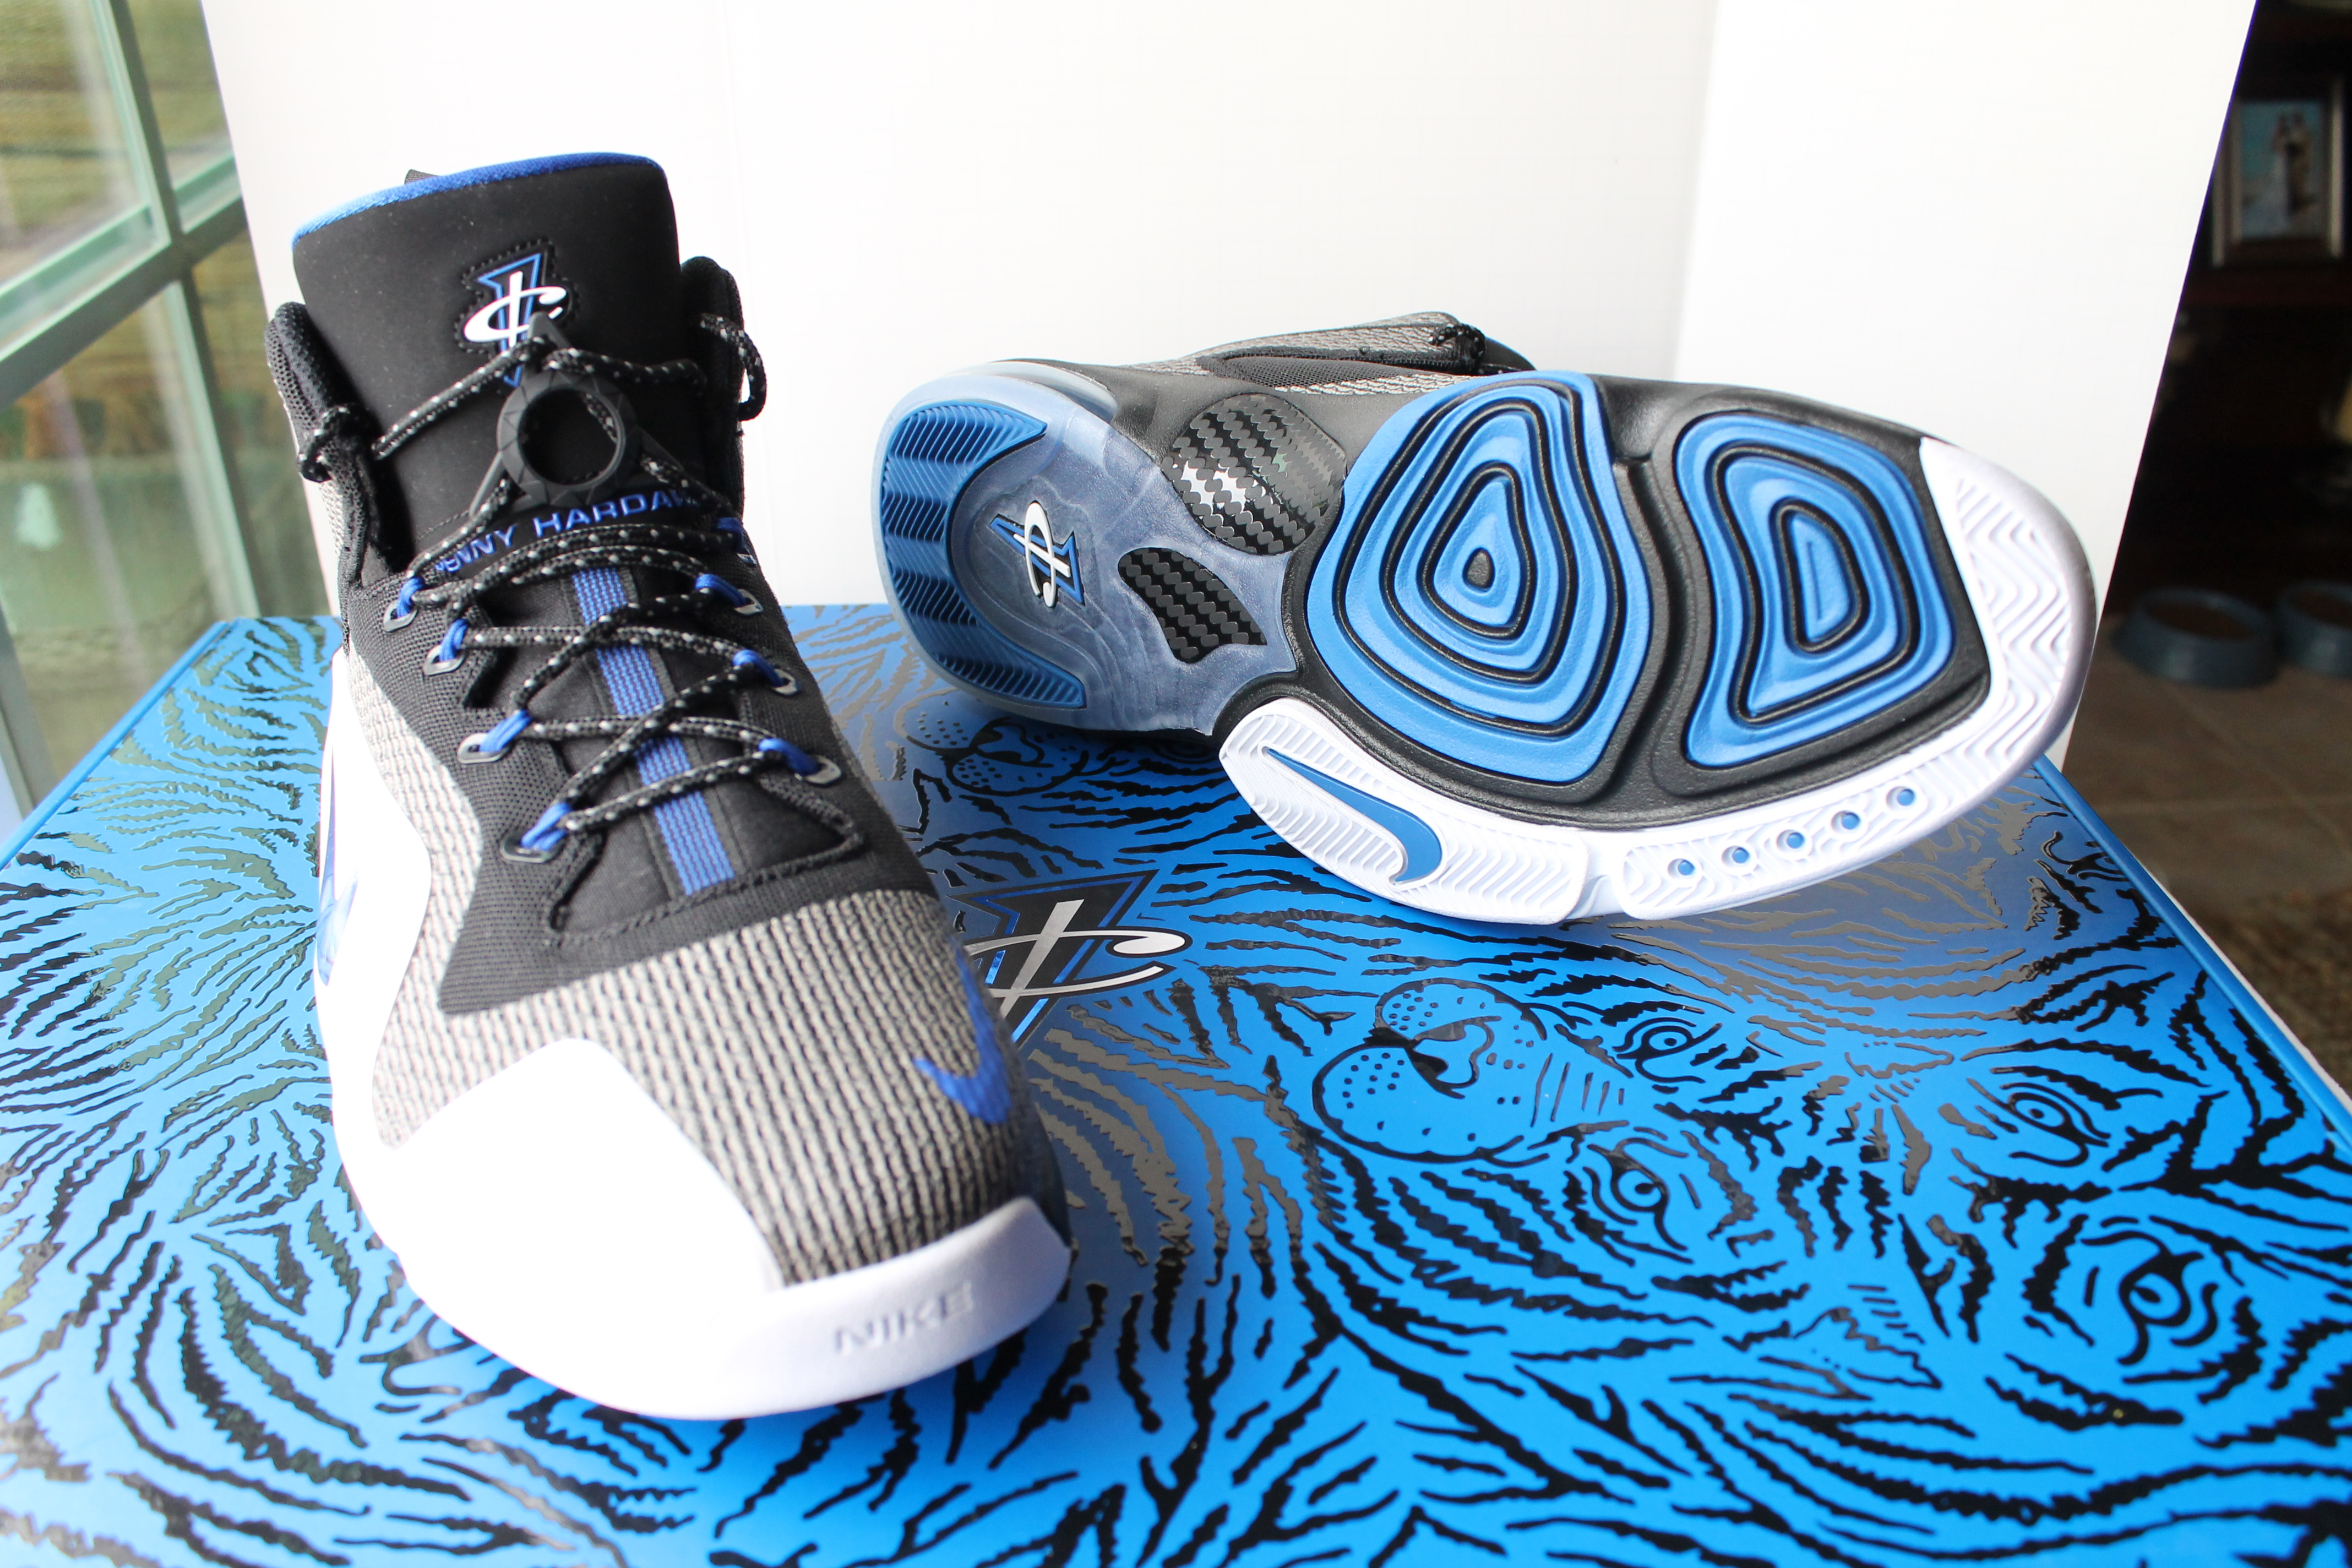 34b23bf62f5 Nike Penny Pack QS Sharpie - discount nike shoes